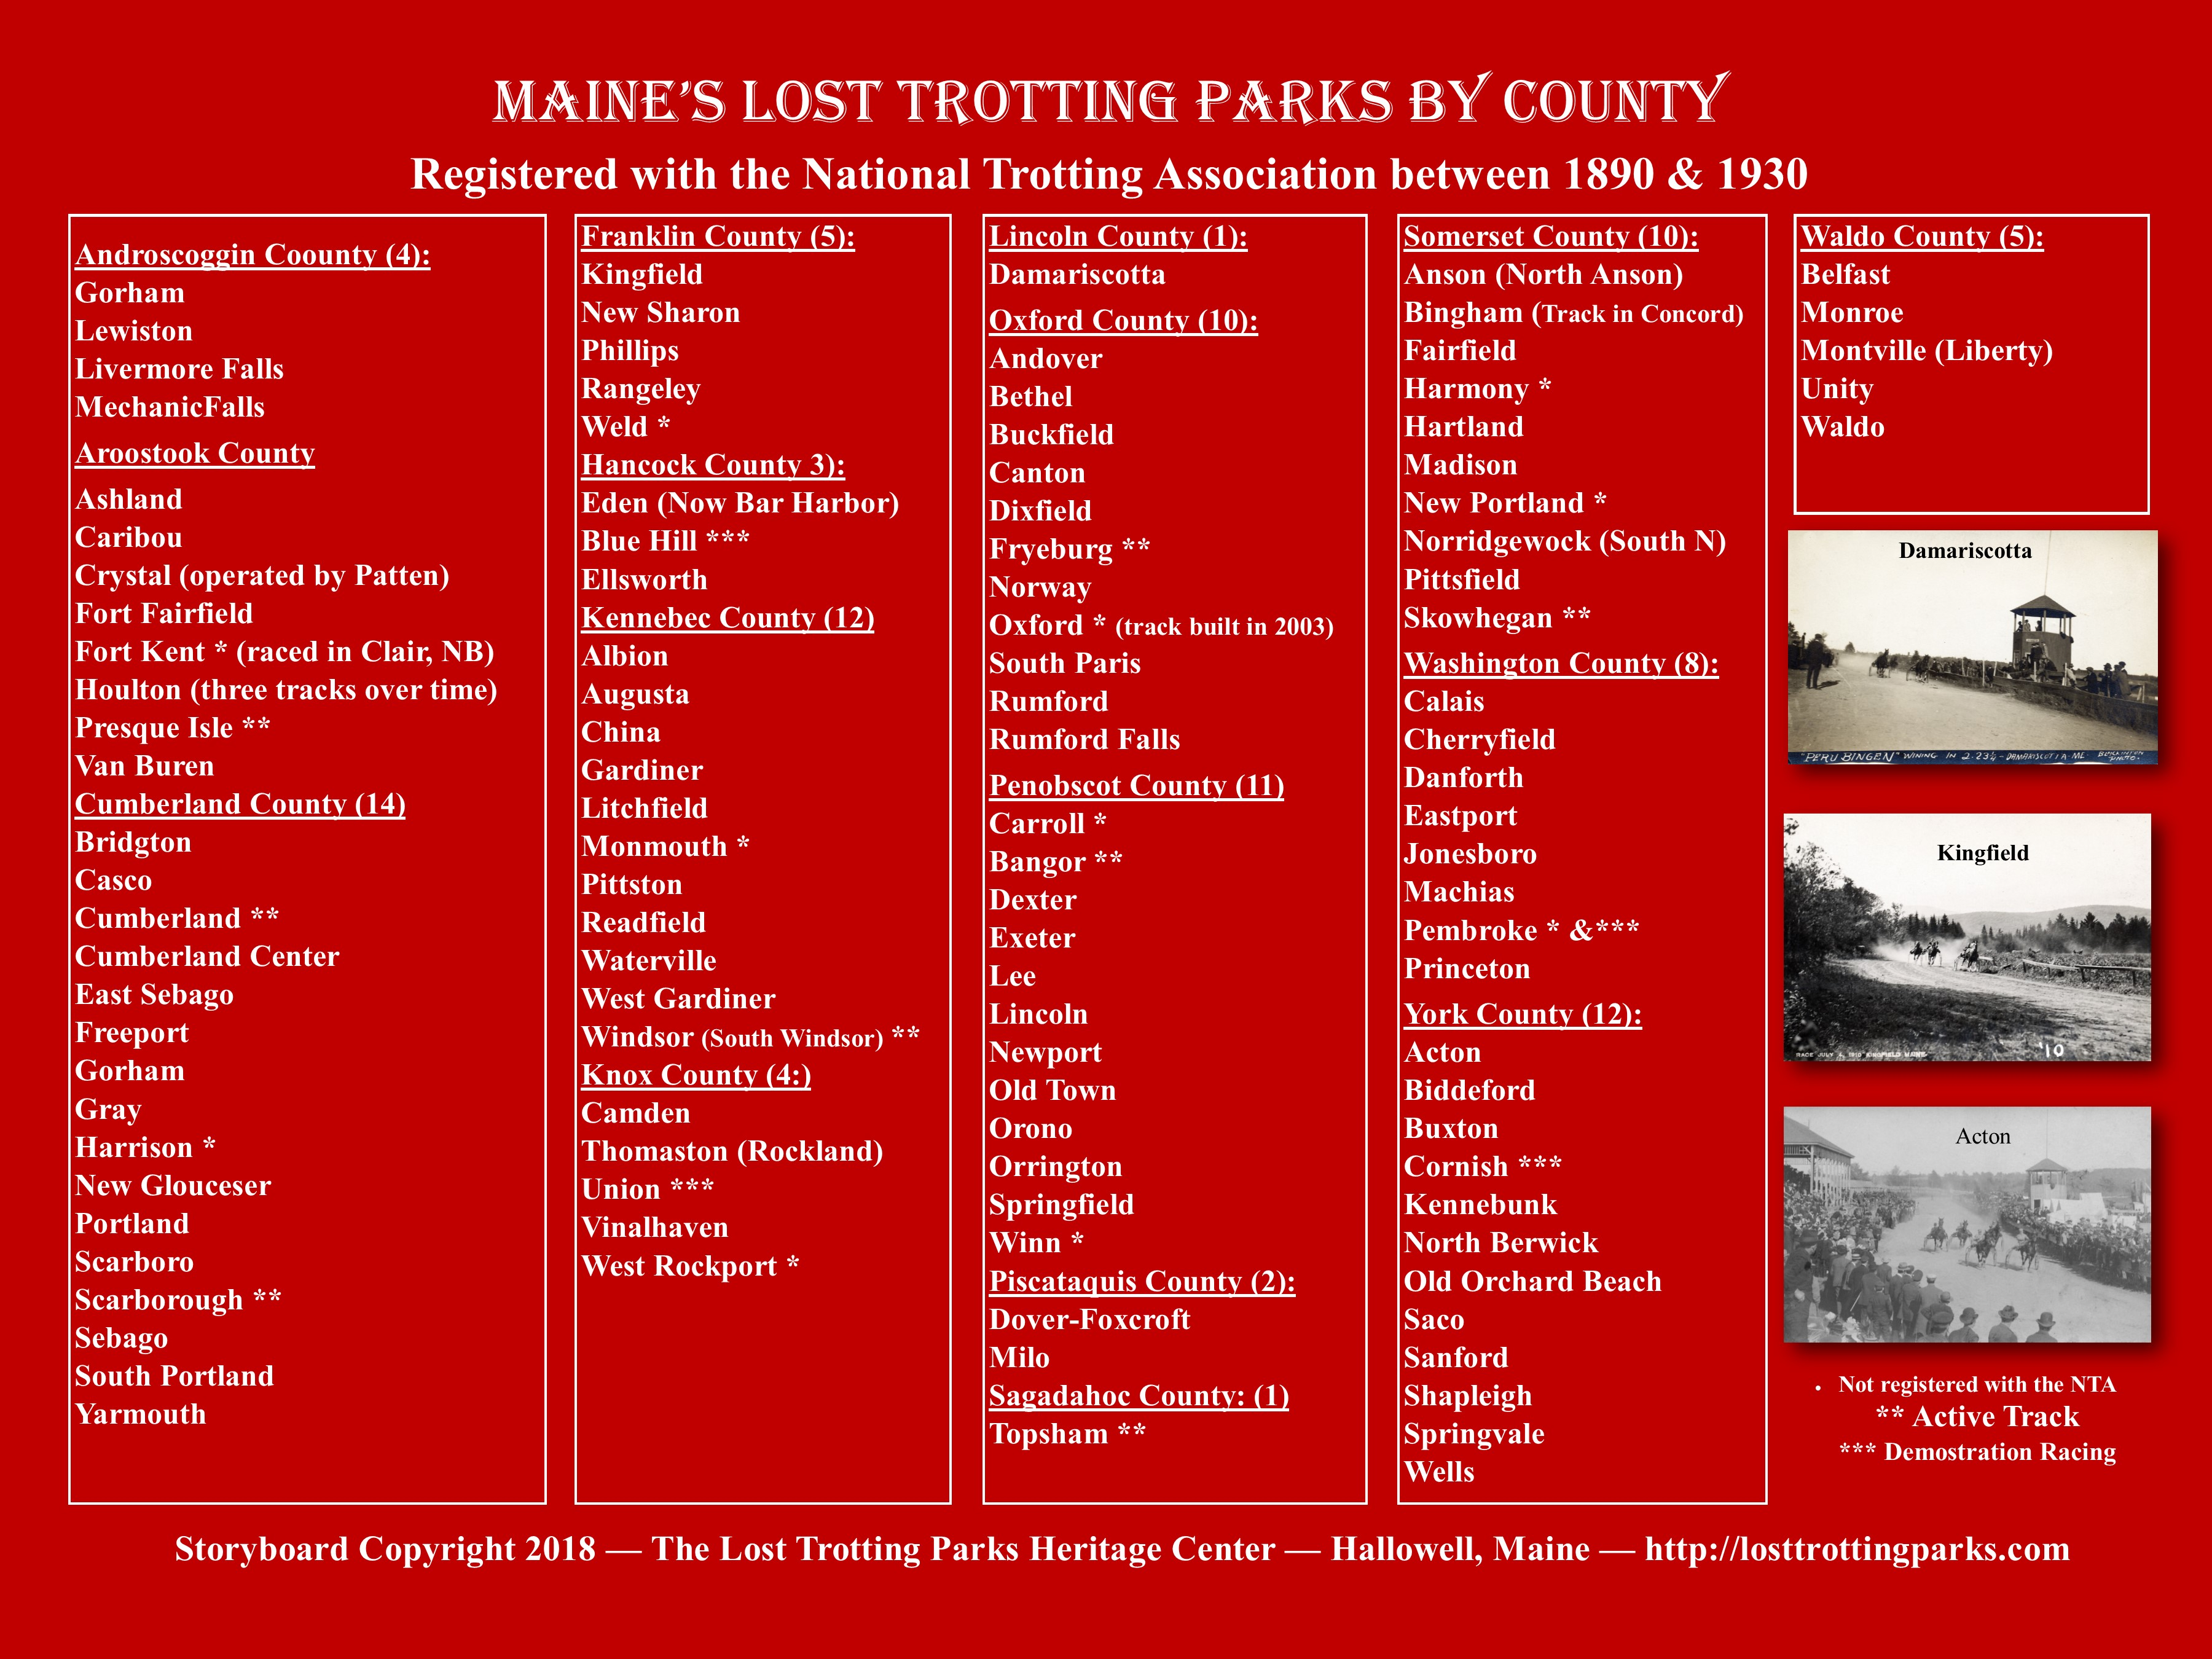 Maine's Active and Lost Trotting Parks by County including National Trotting Association Registration between 1890 and 1930